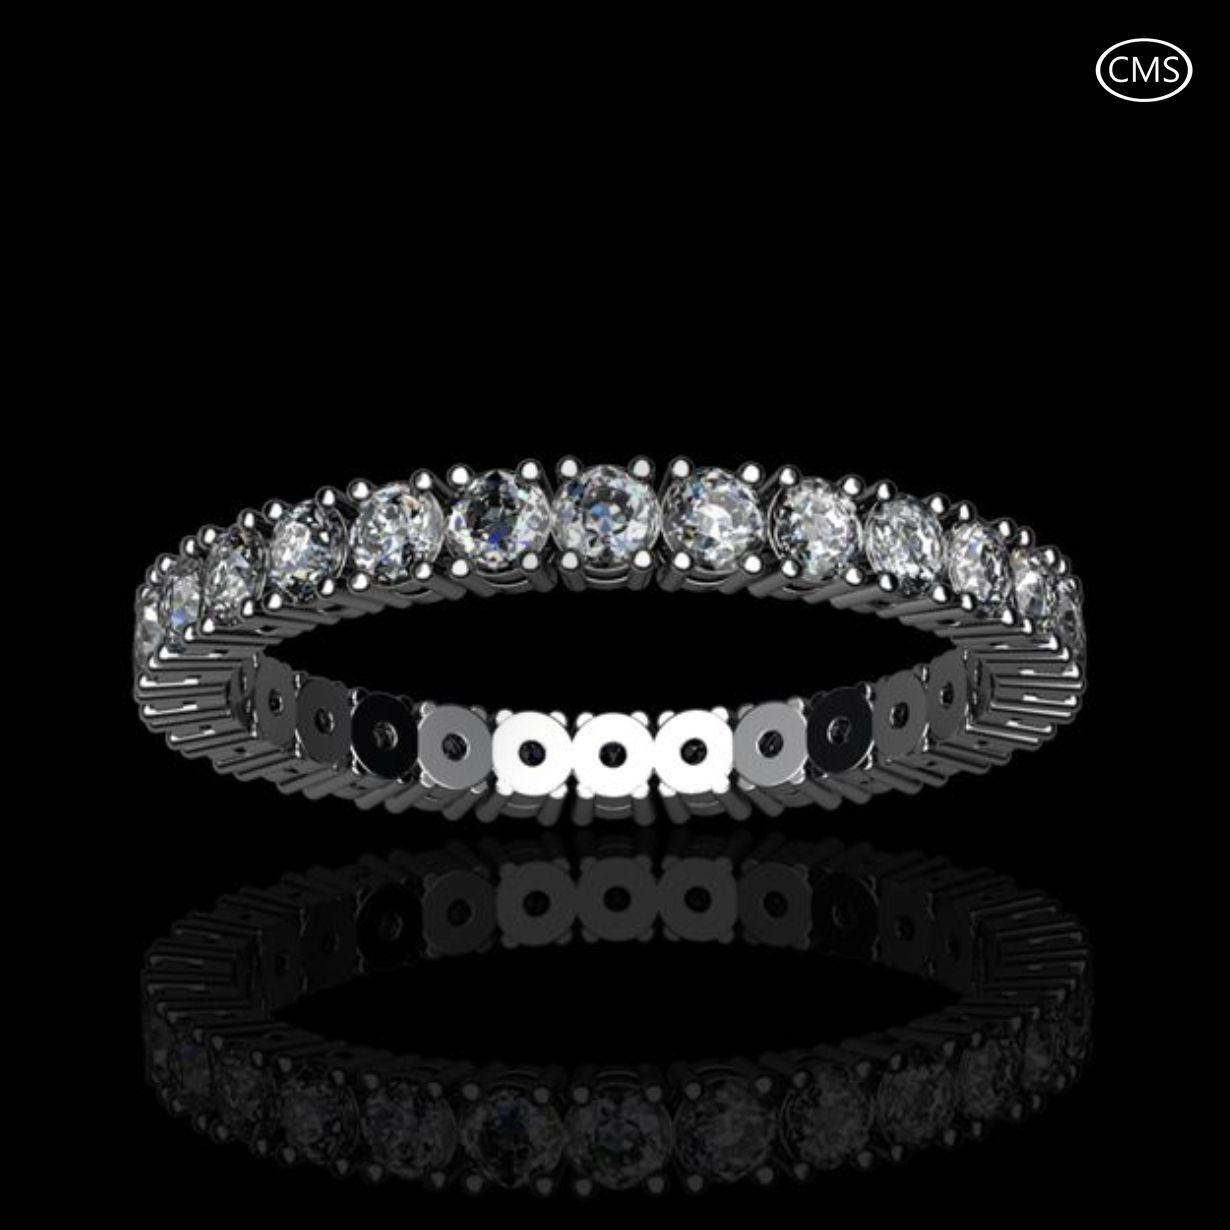 Diamond Ring 1.12cts. Wedding ring in platinum, with 28 round brilliant cut diamonds a total of 1.12cts in a twin peg setting. Width 2.8mm and 1.7mm deep.